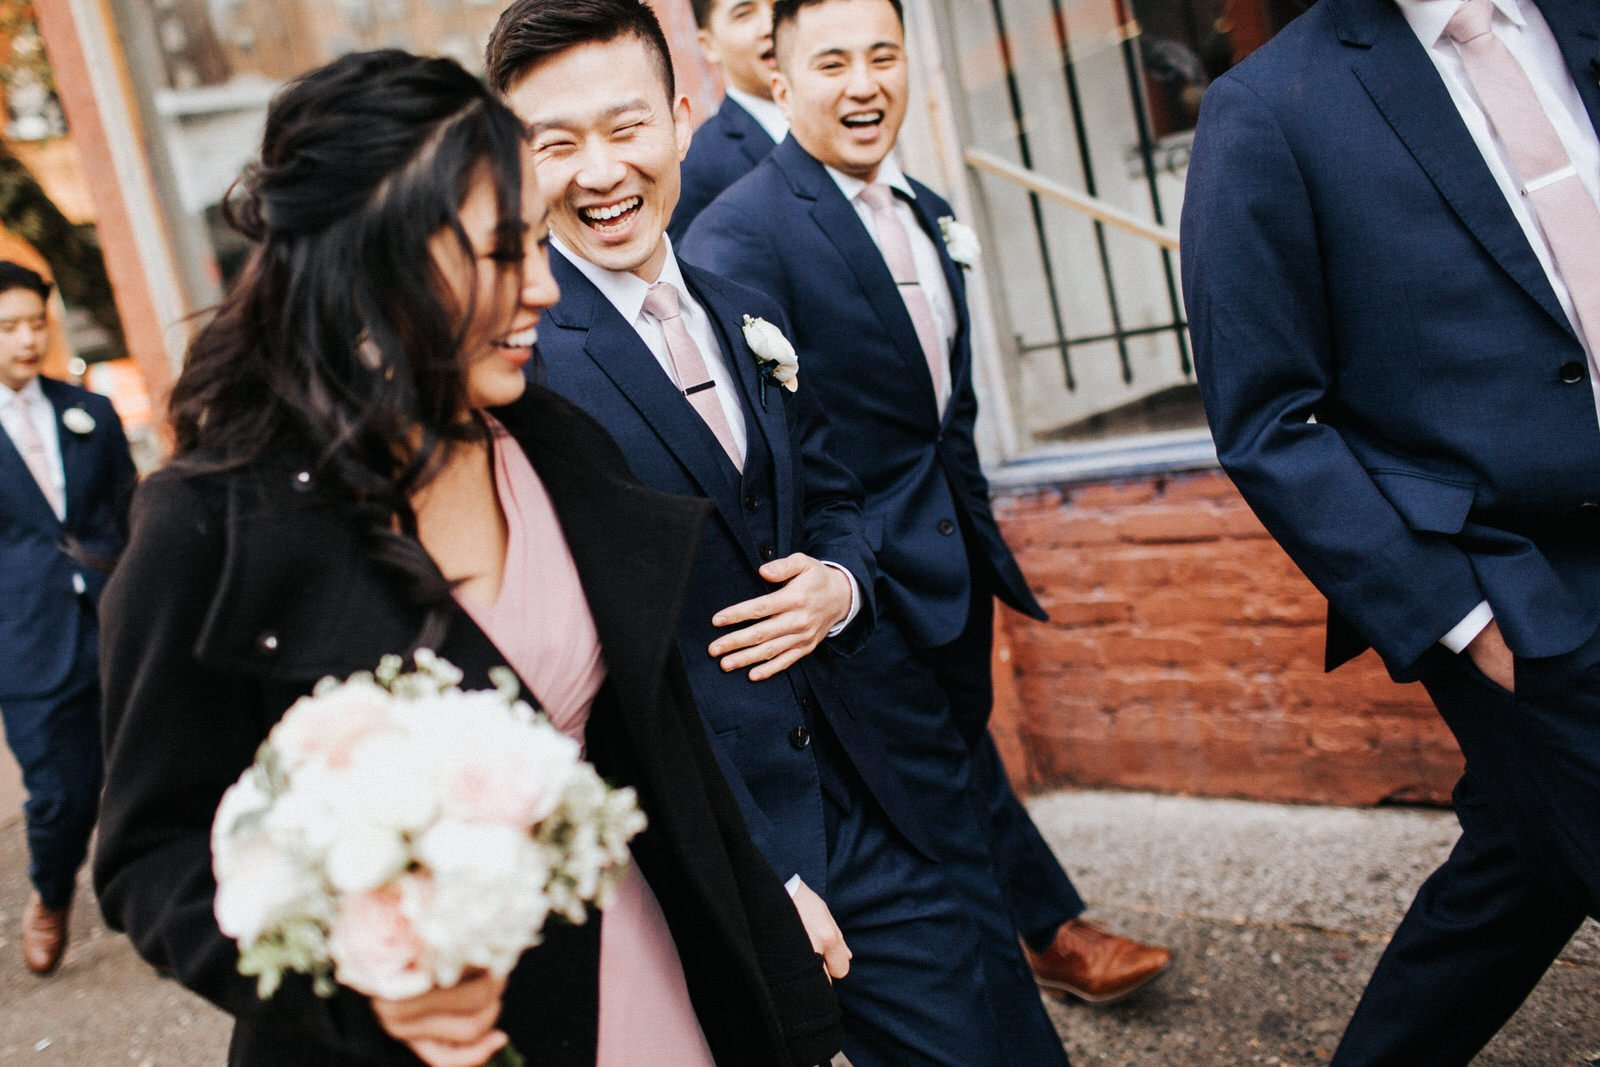 The groom laughs with the bridesmaids